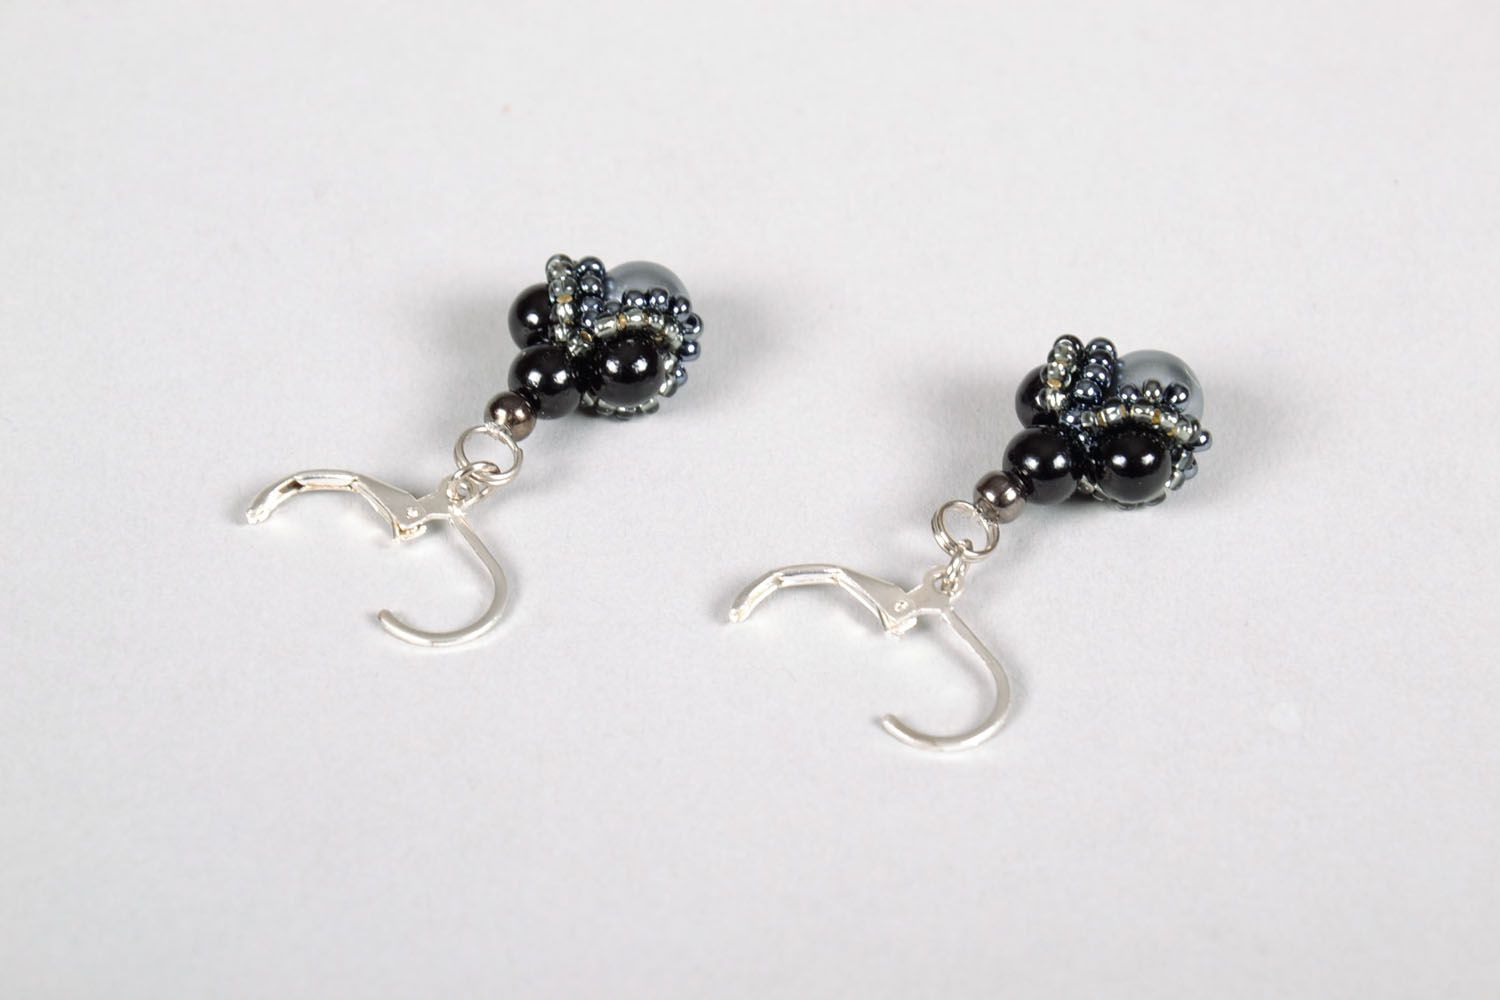 Earrings with charms Black Garnet photo 4